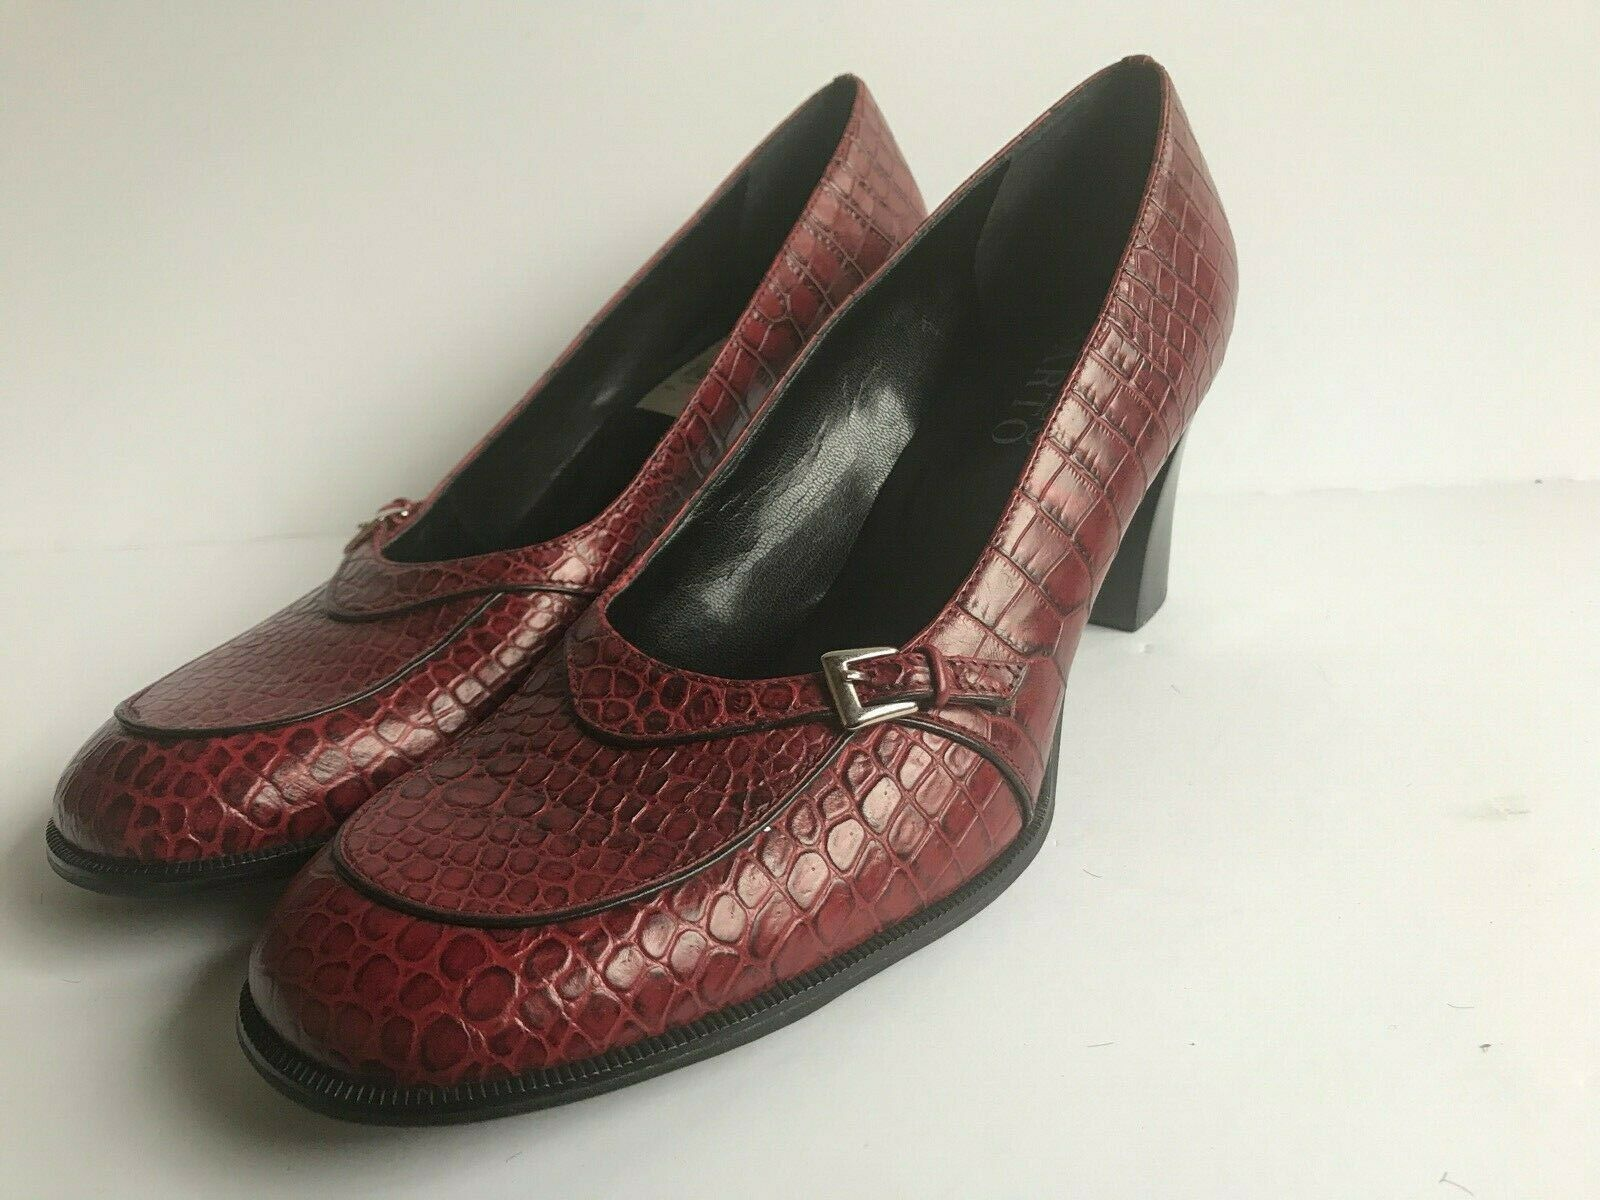 Primary image for Franco Sarto Womens Cro Embossed Leather Slip On Mary Jane Heels Red Size 9.5M